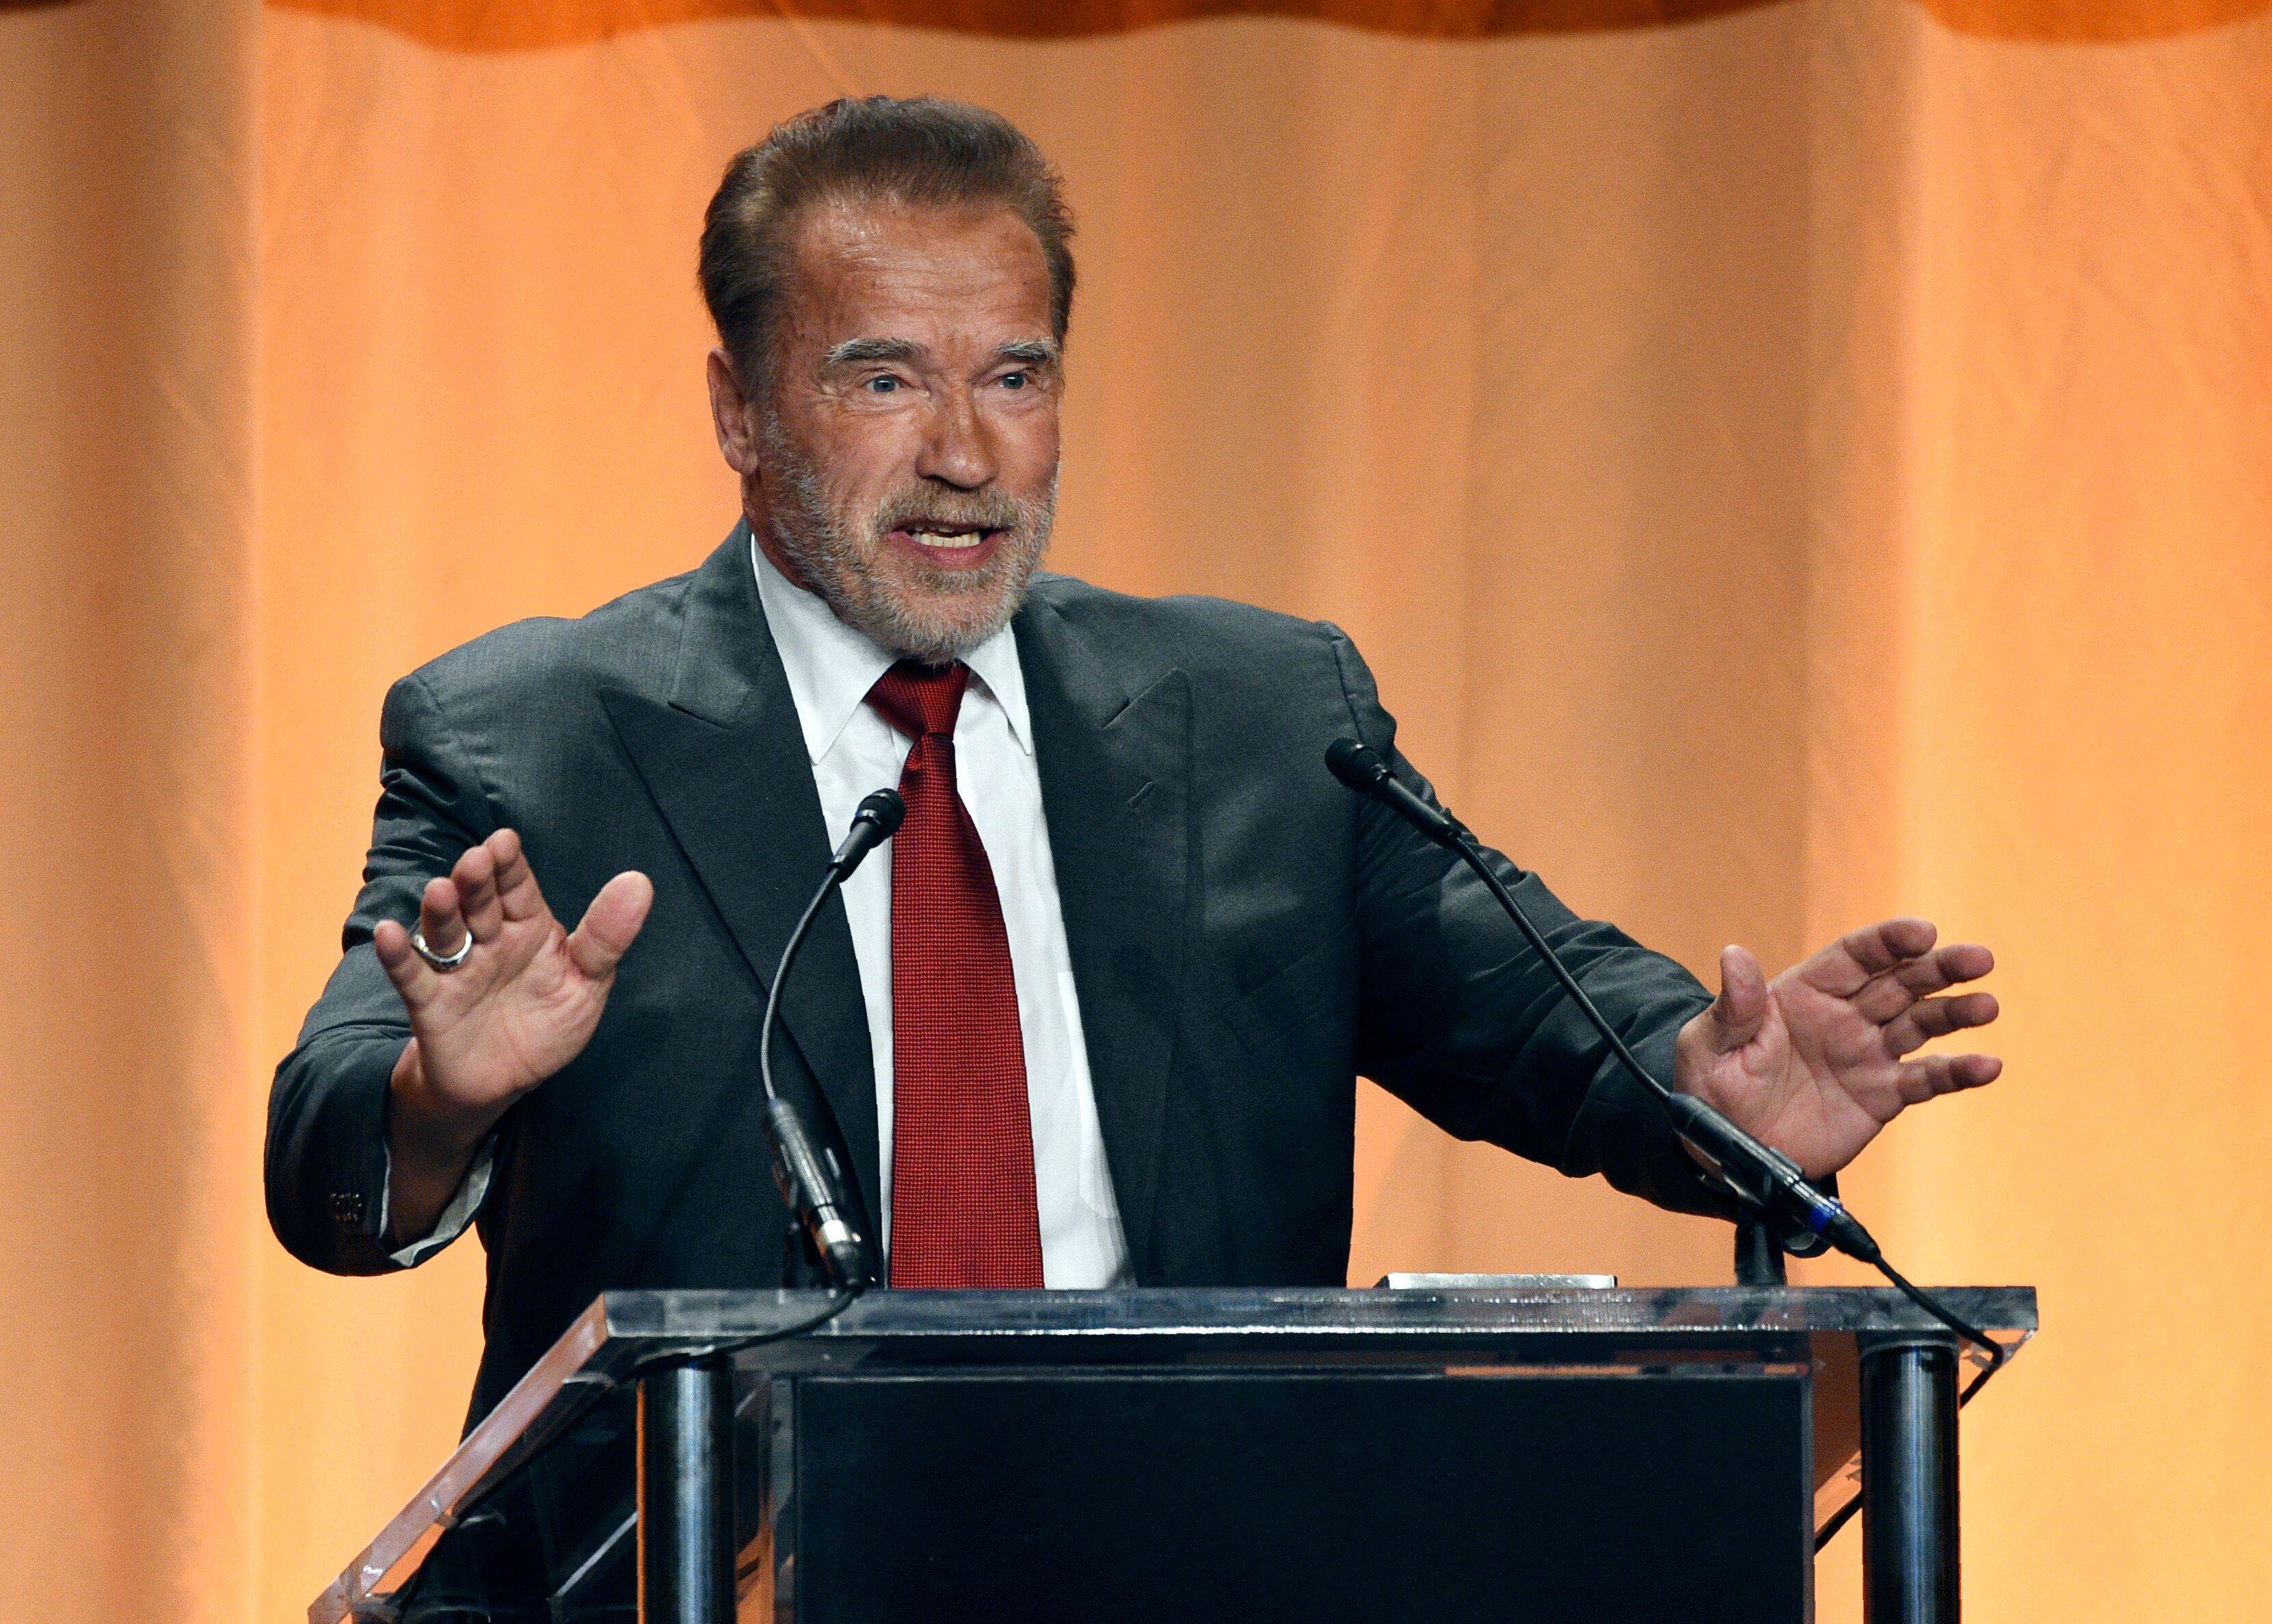 Arnold Schwarzenegger has frequently criticized President Donald Trump and his administration ― particularly on its anti-envi